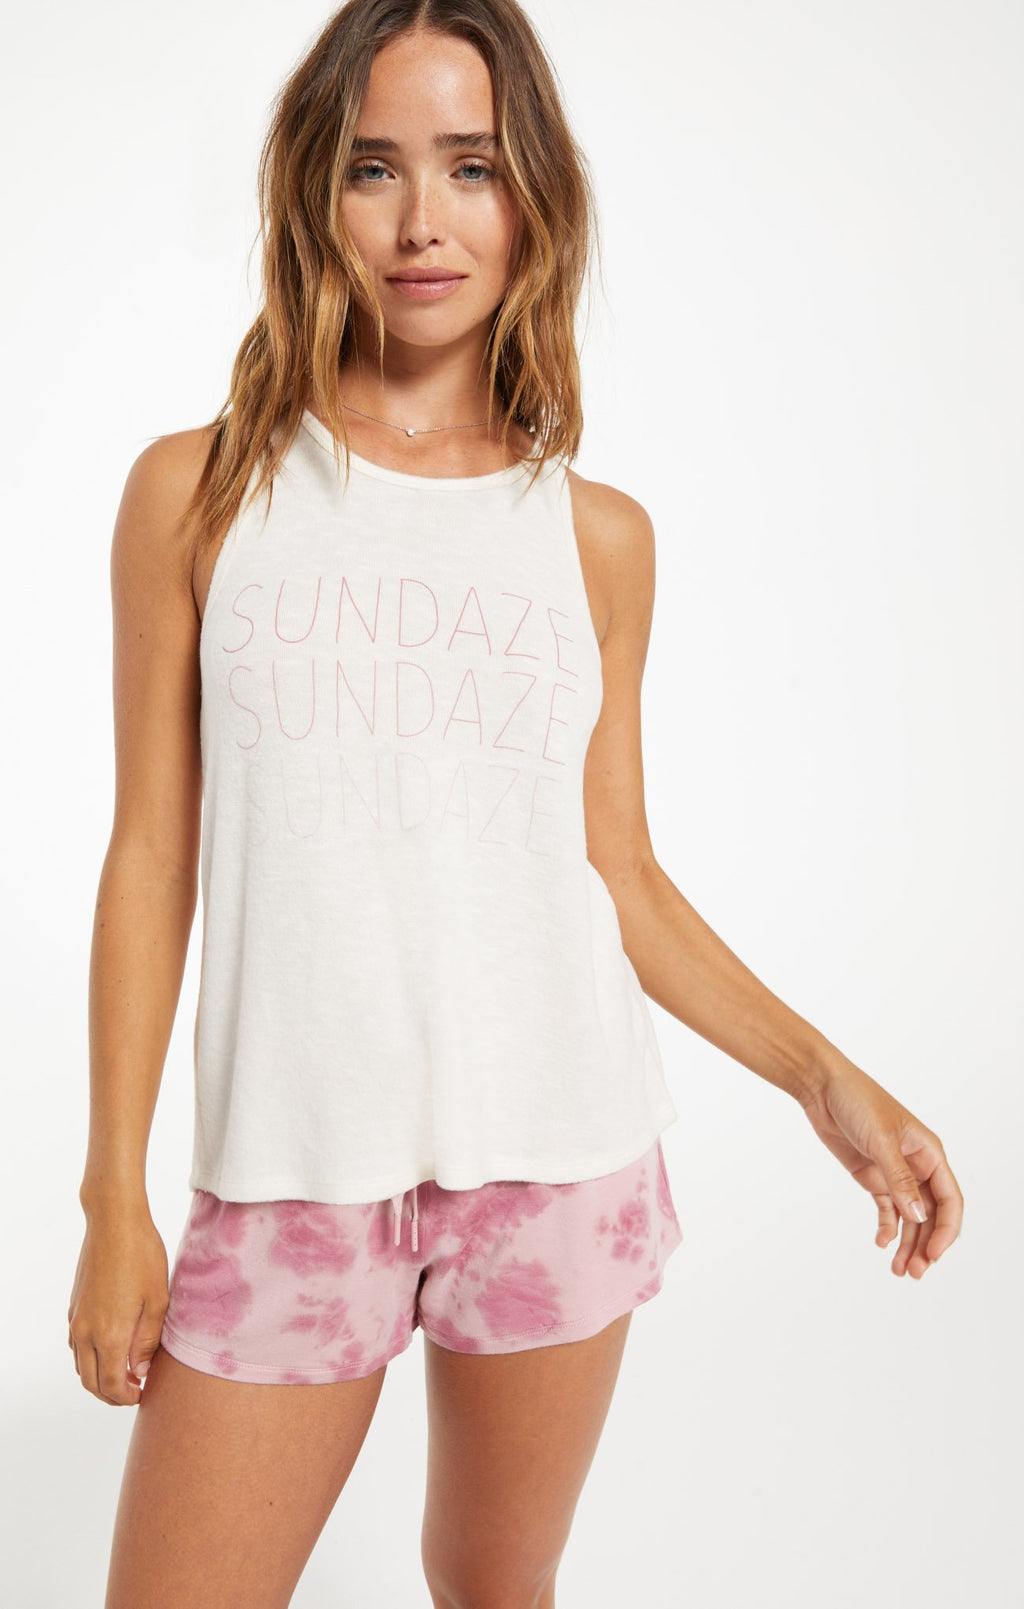 Sundaze Graphic Tank